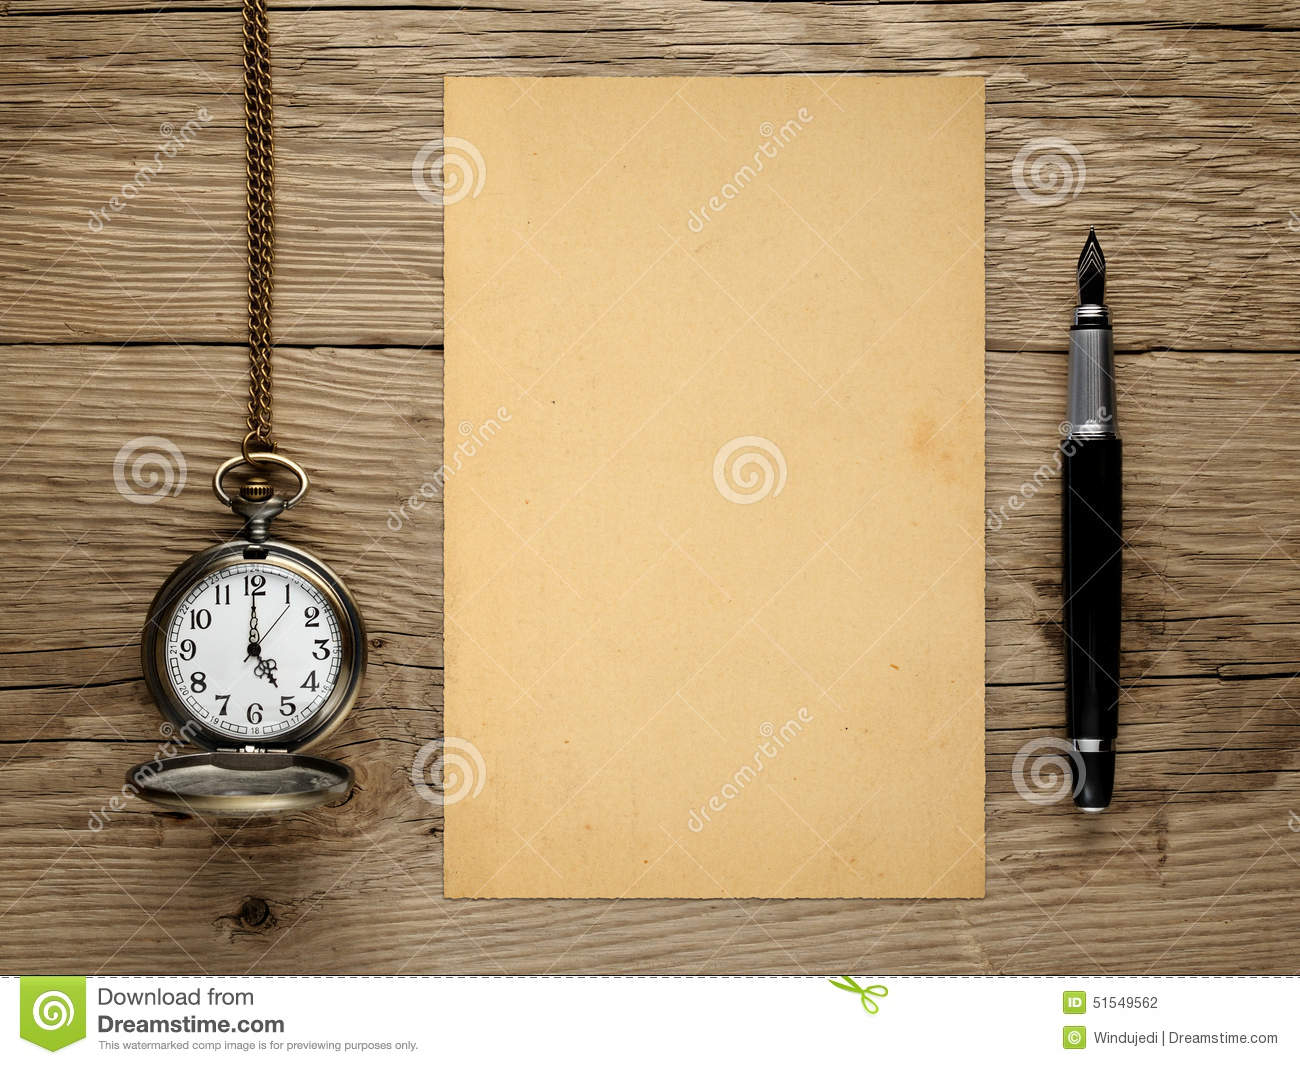 Pocket watch, fountain pen and old paper